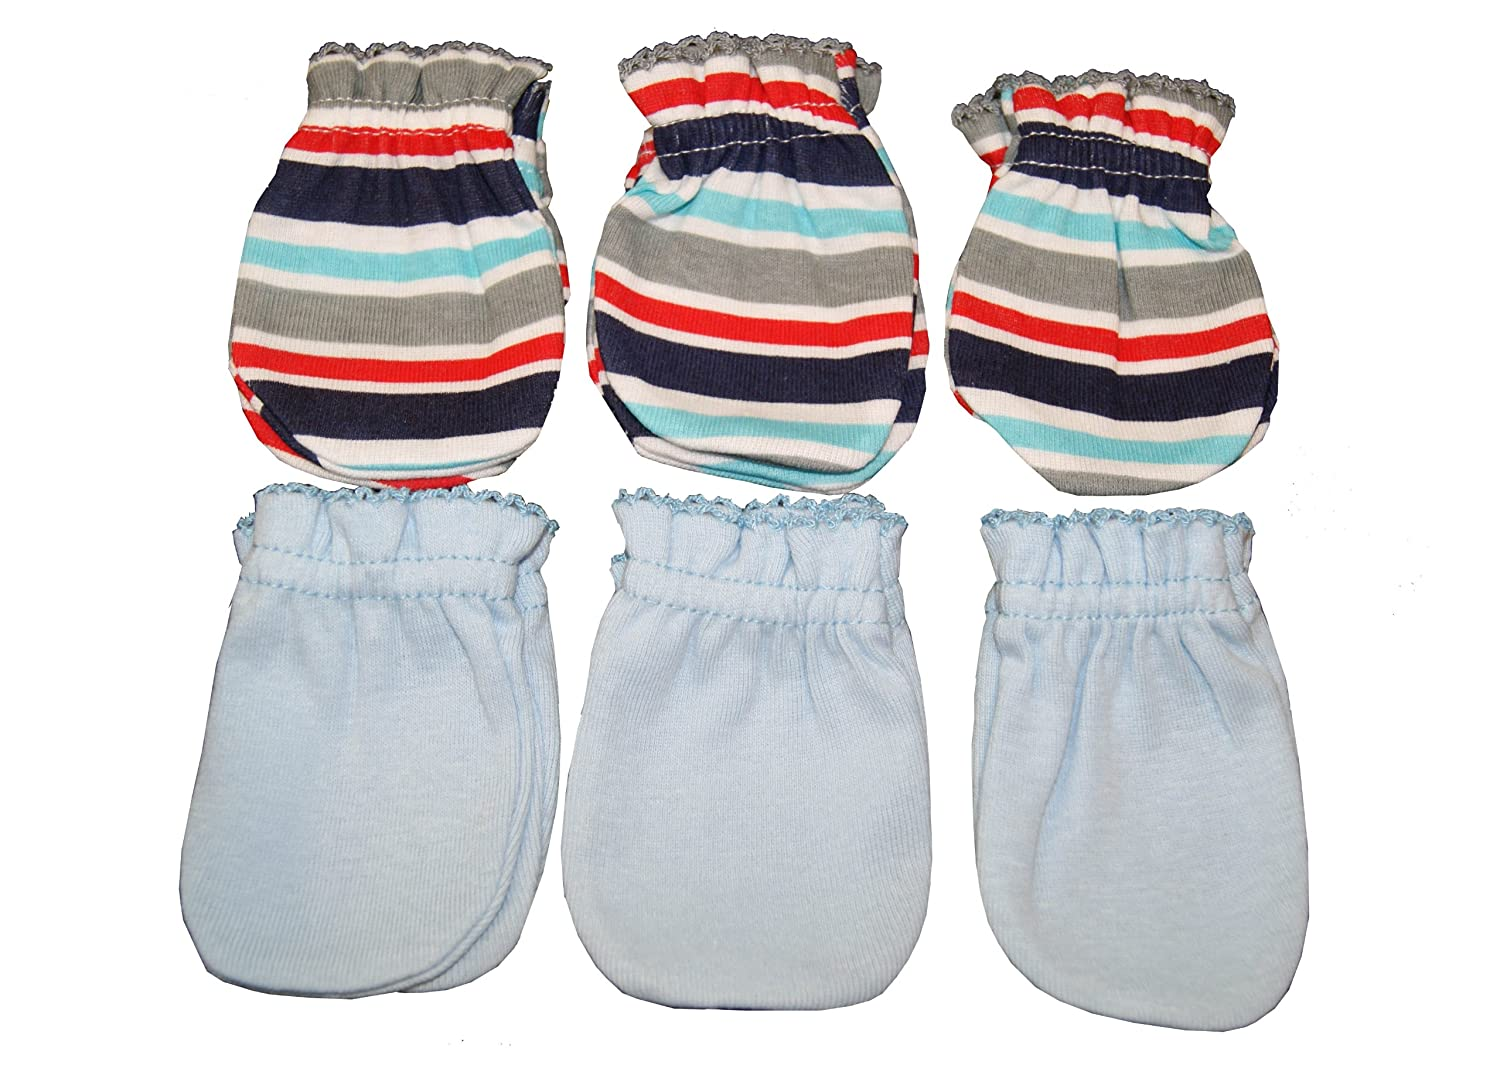 Stria + Blue Atlanta Mall MIX 6 Pairs New color Cotton Mittens G Scratch infant Baby No